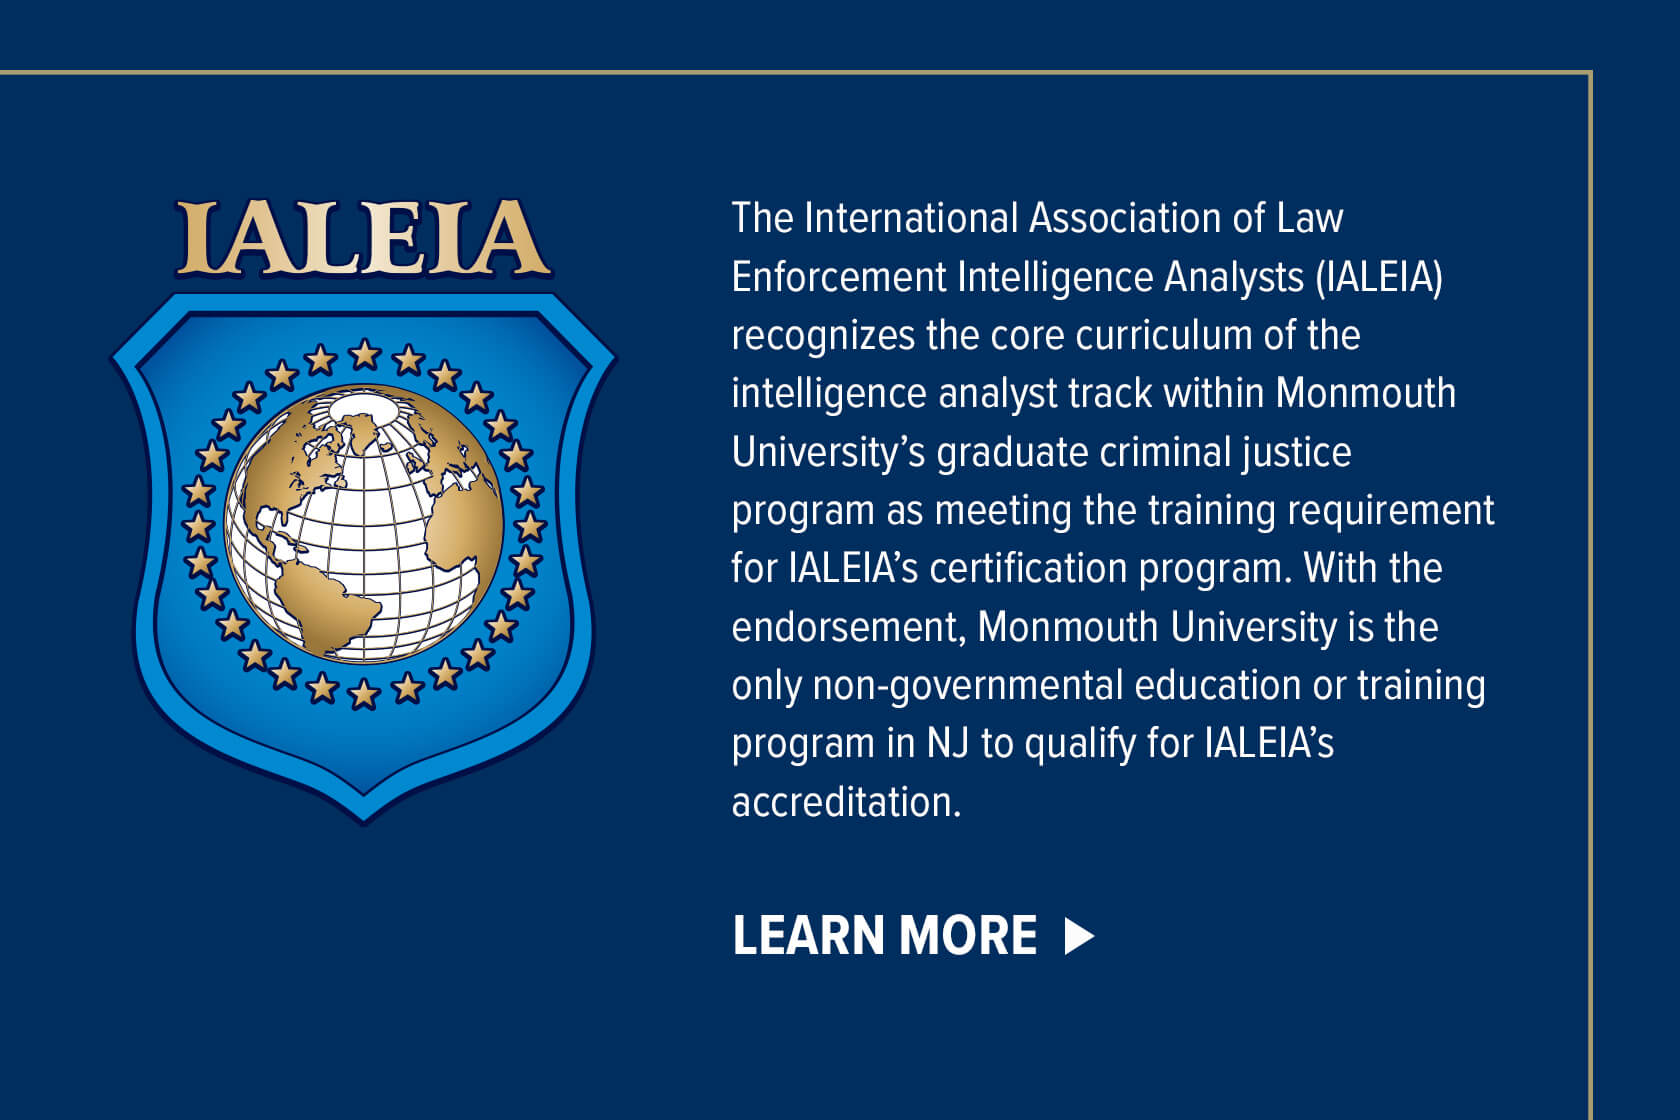 The International Association of Law Enforcement Intelligence Analysts recognizes the core curriculum of the intelligence analyst track within Monmouth University's graduate criminal justice program as meeting the training requirement for IALEIA's certification program. With the endorsement, Monmouth University is the only non-governmental education or training program in NJ to qualify for IALEIA's accreditation.